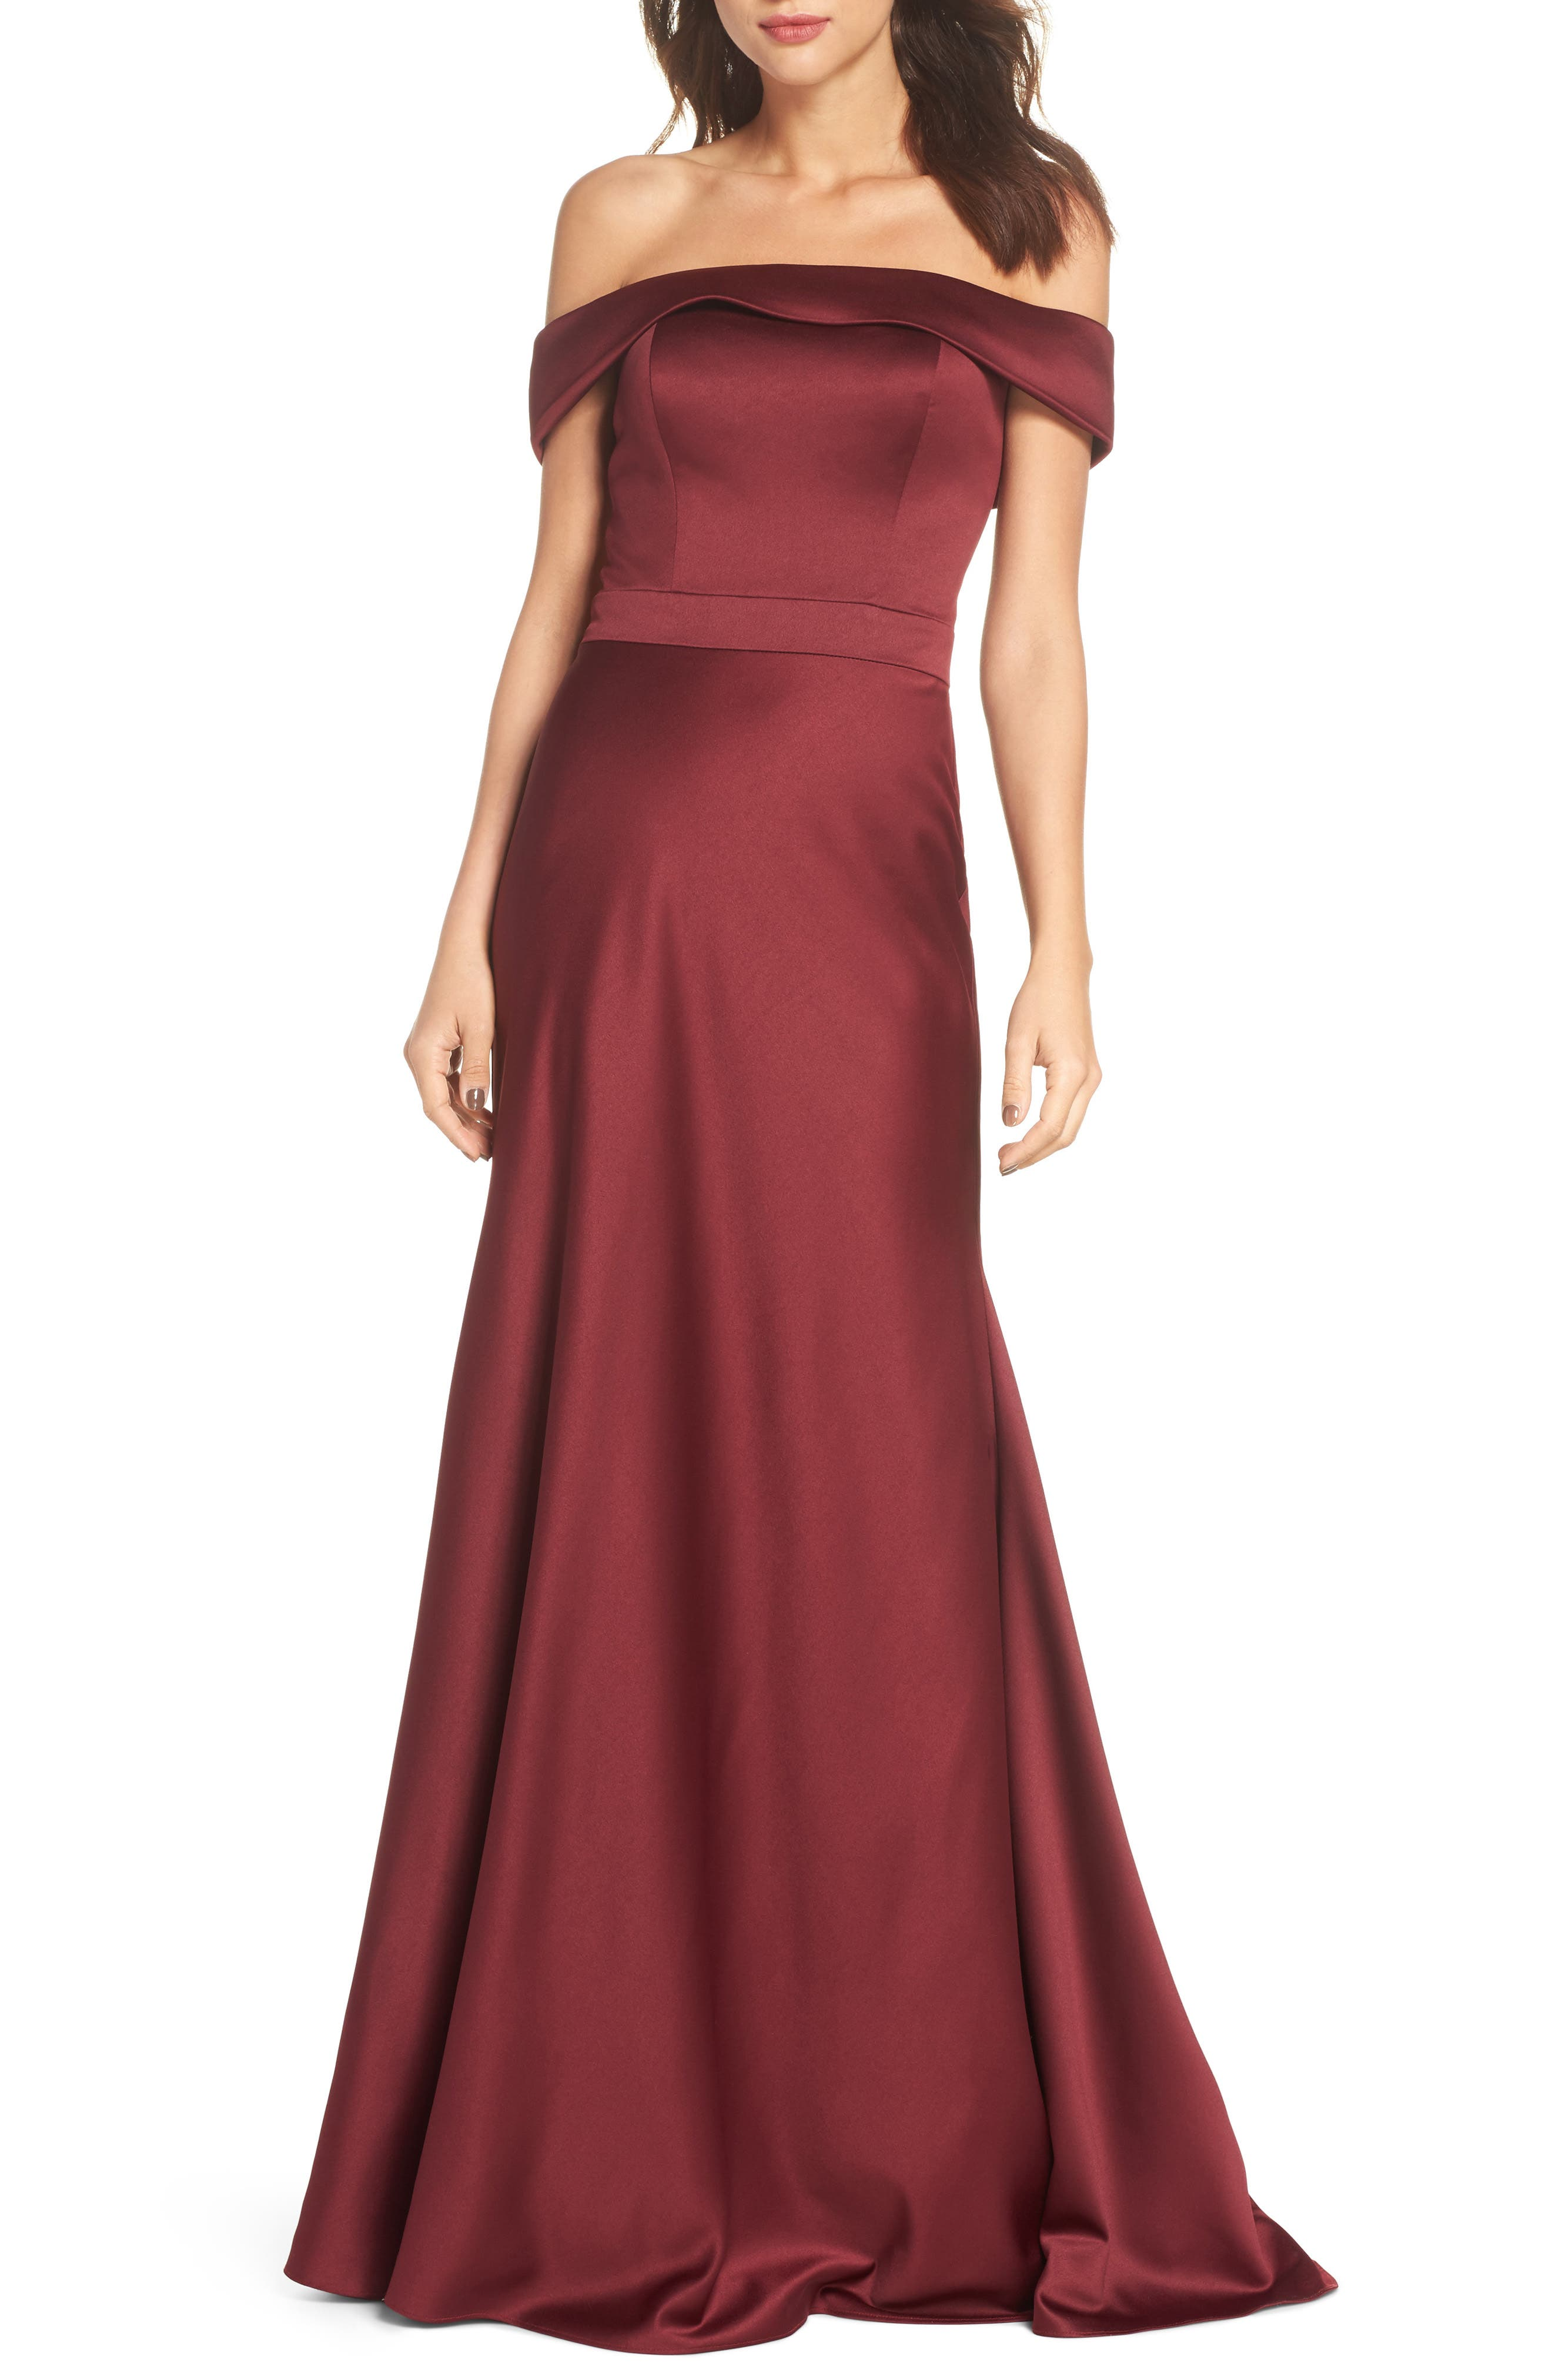 Red Dress for Prom